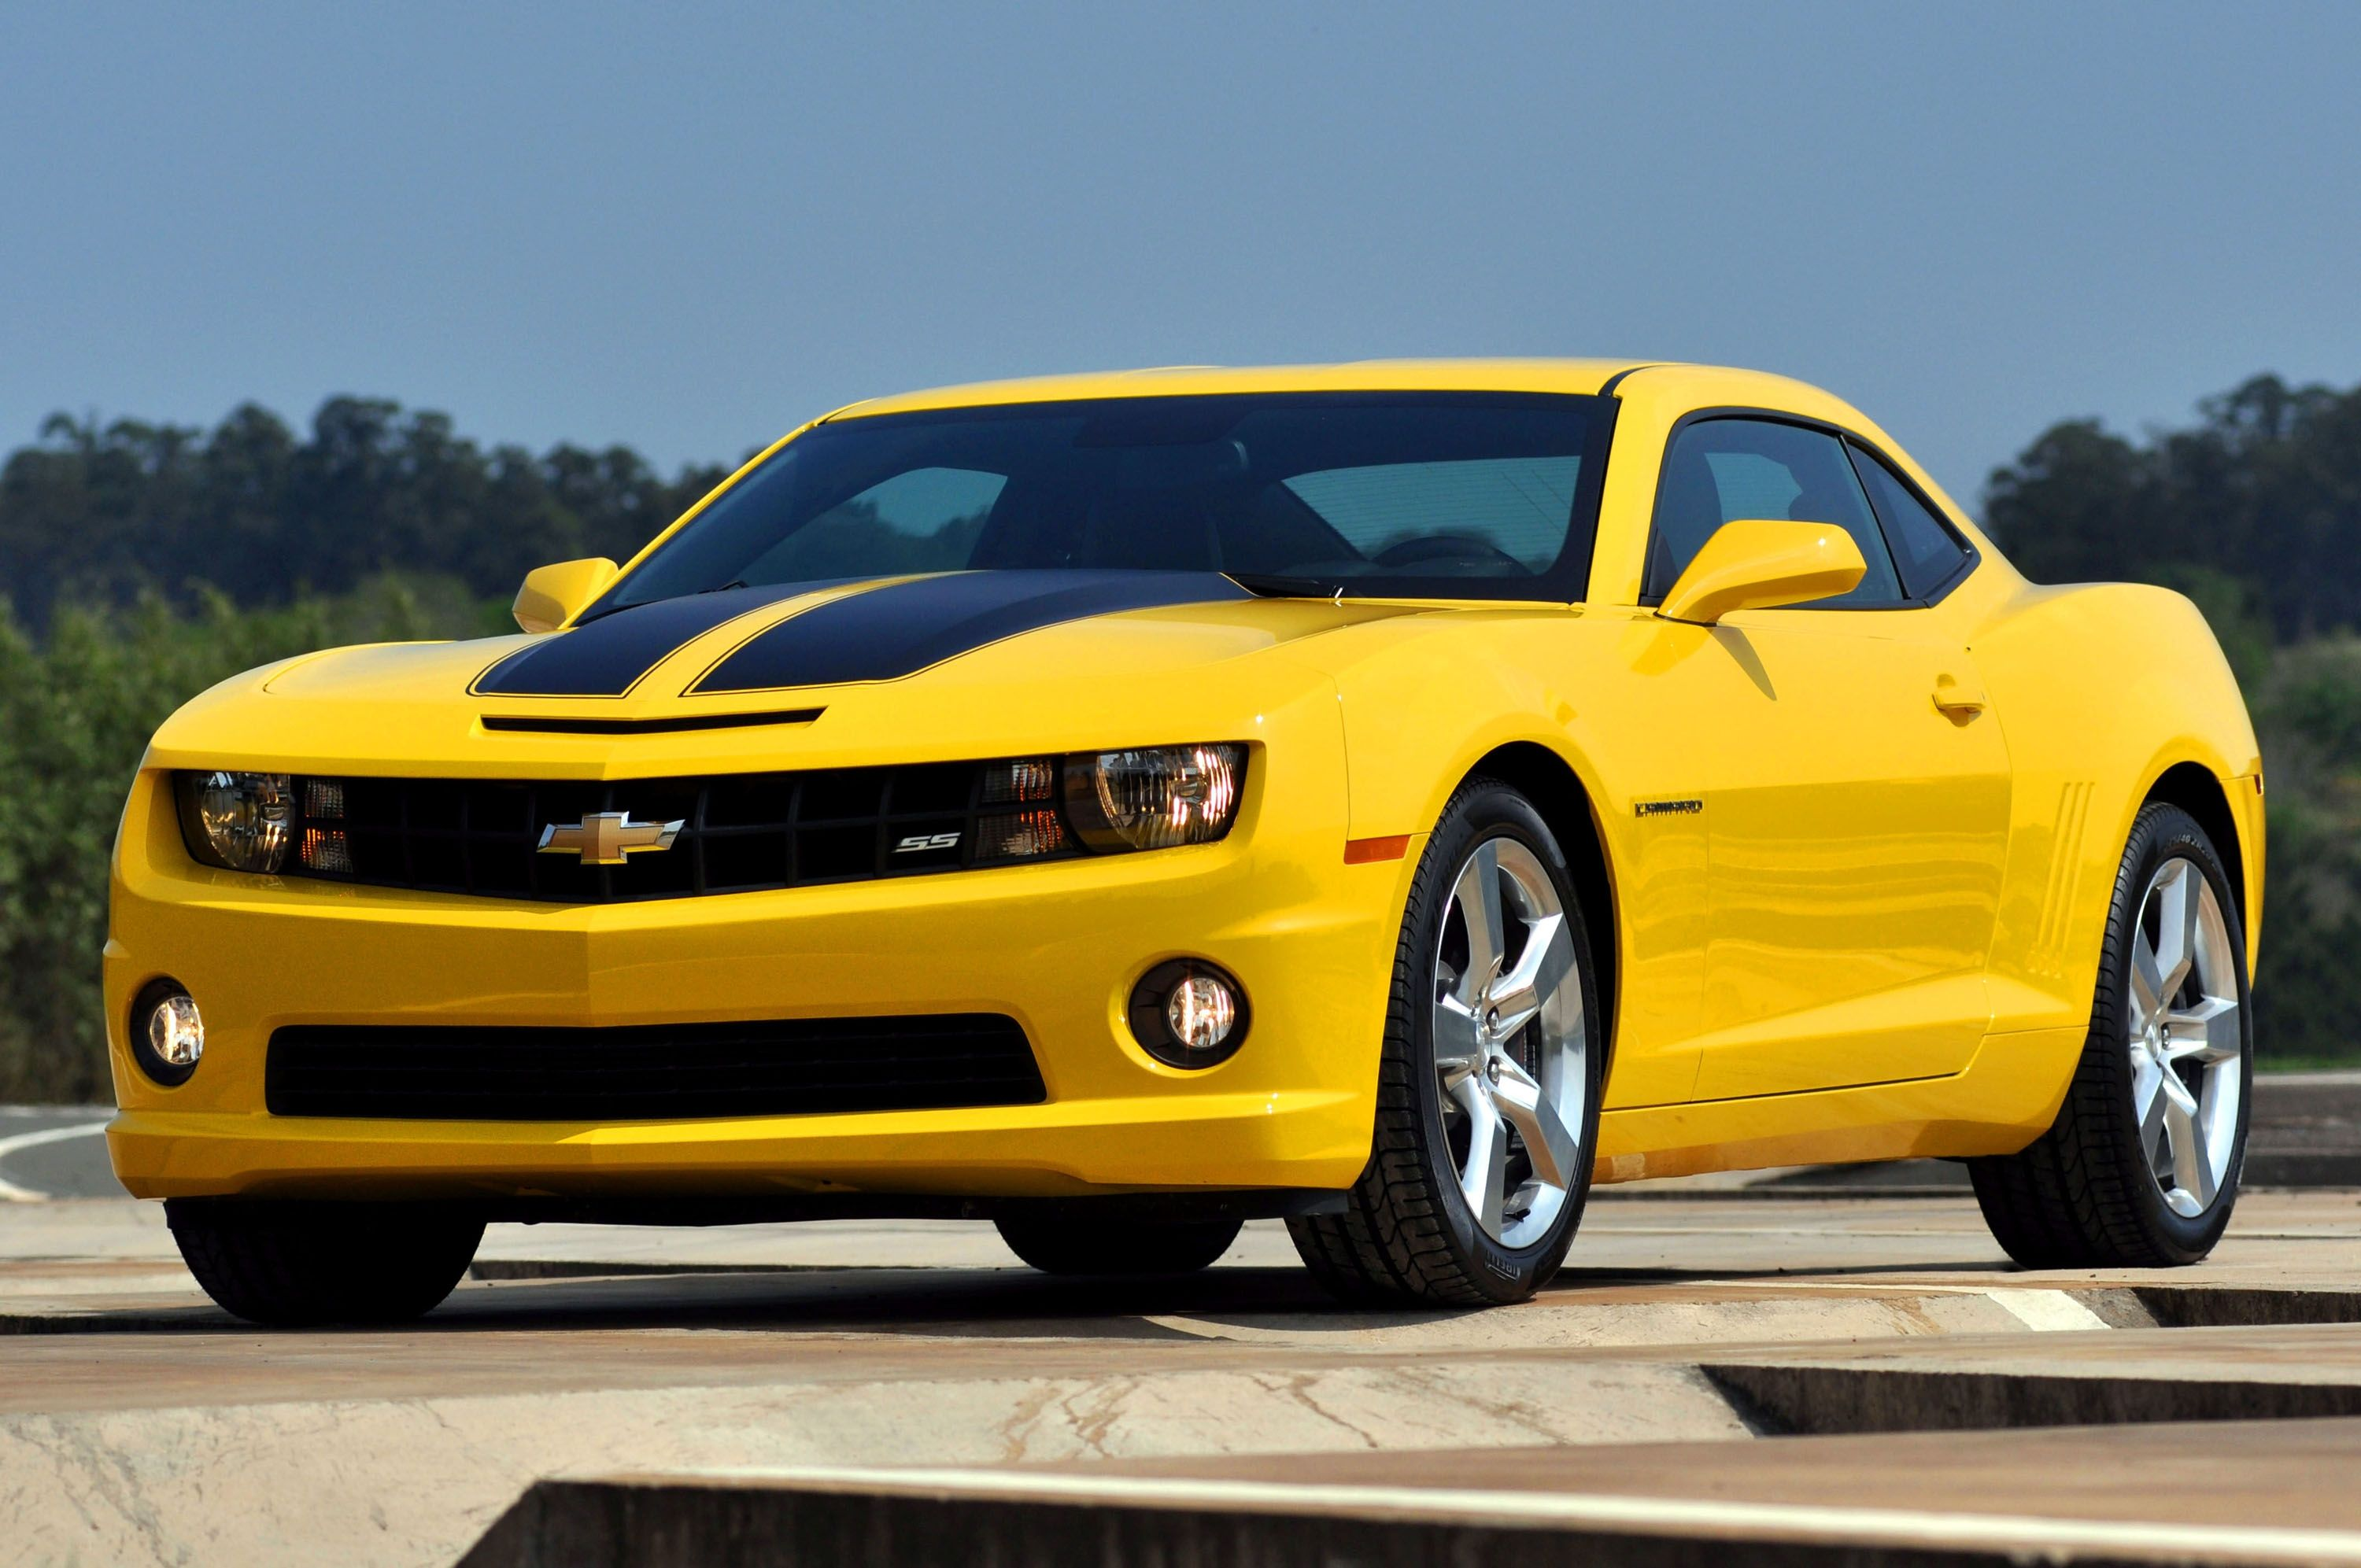 The Chevrolet Camaro Is An Automobile Manufactured By General Motors Gm Under Brand Clified As A Pony Car